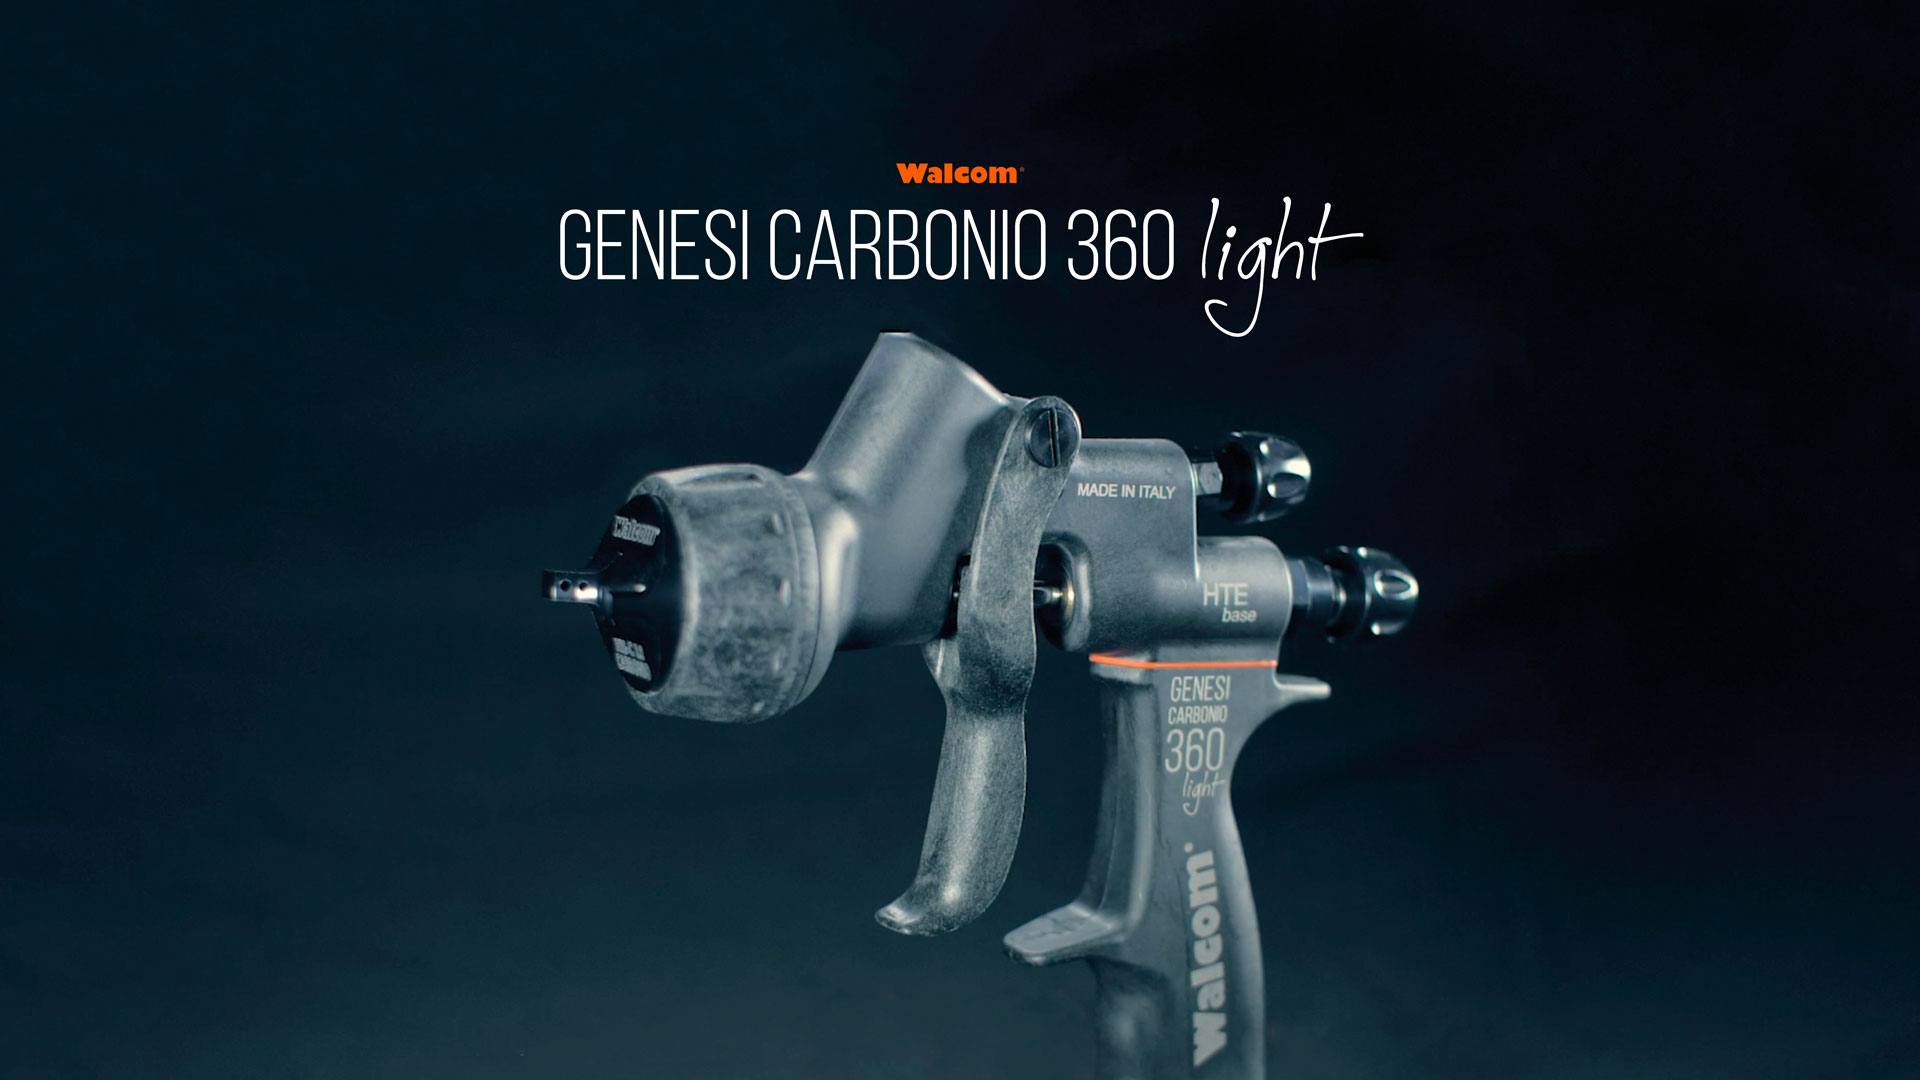 genesi carbone 360 light